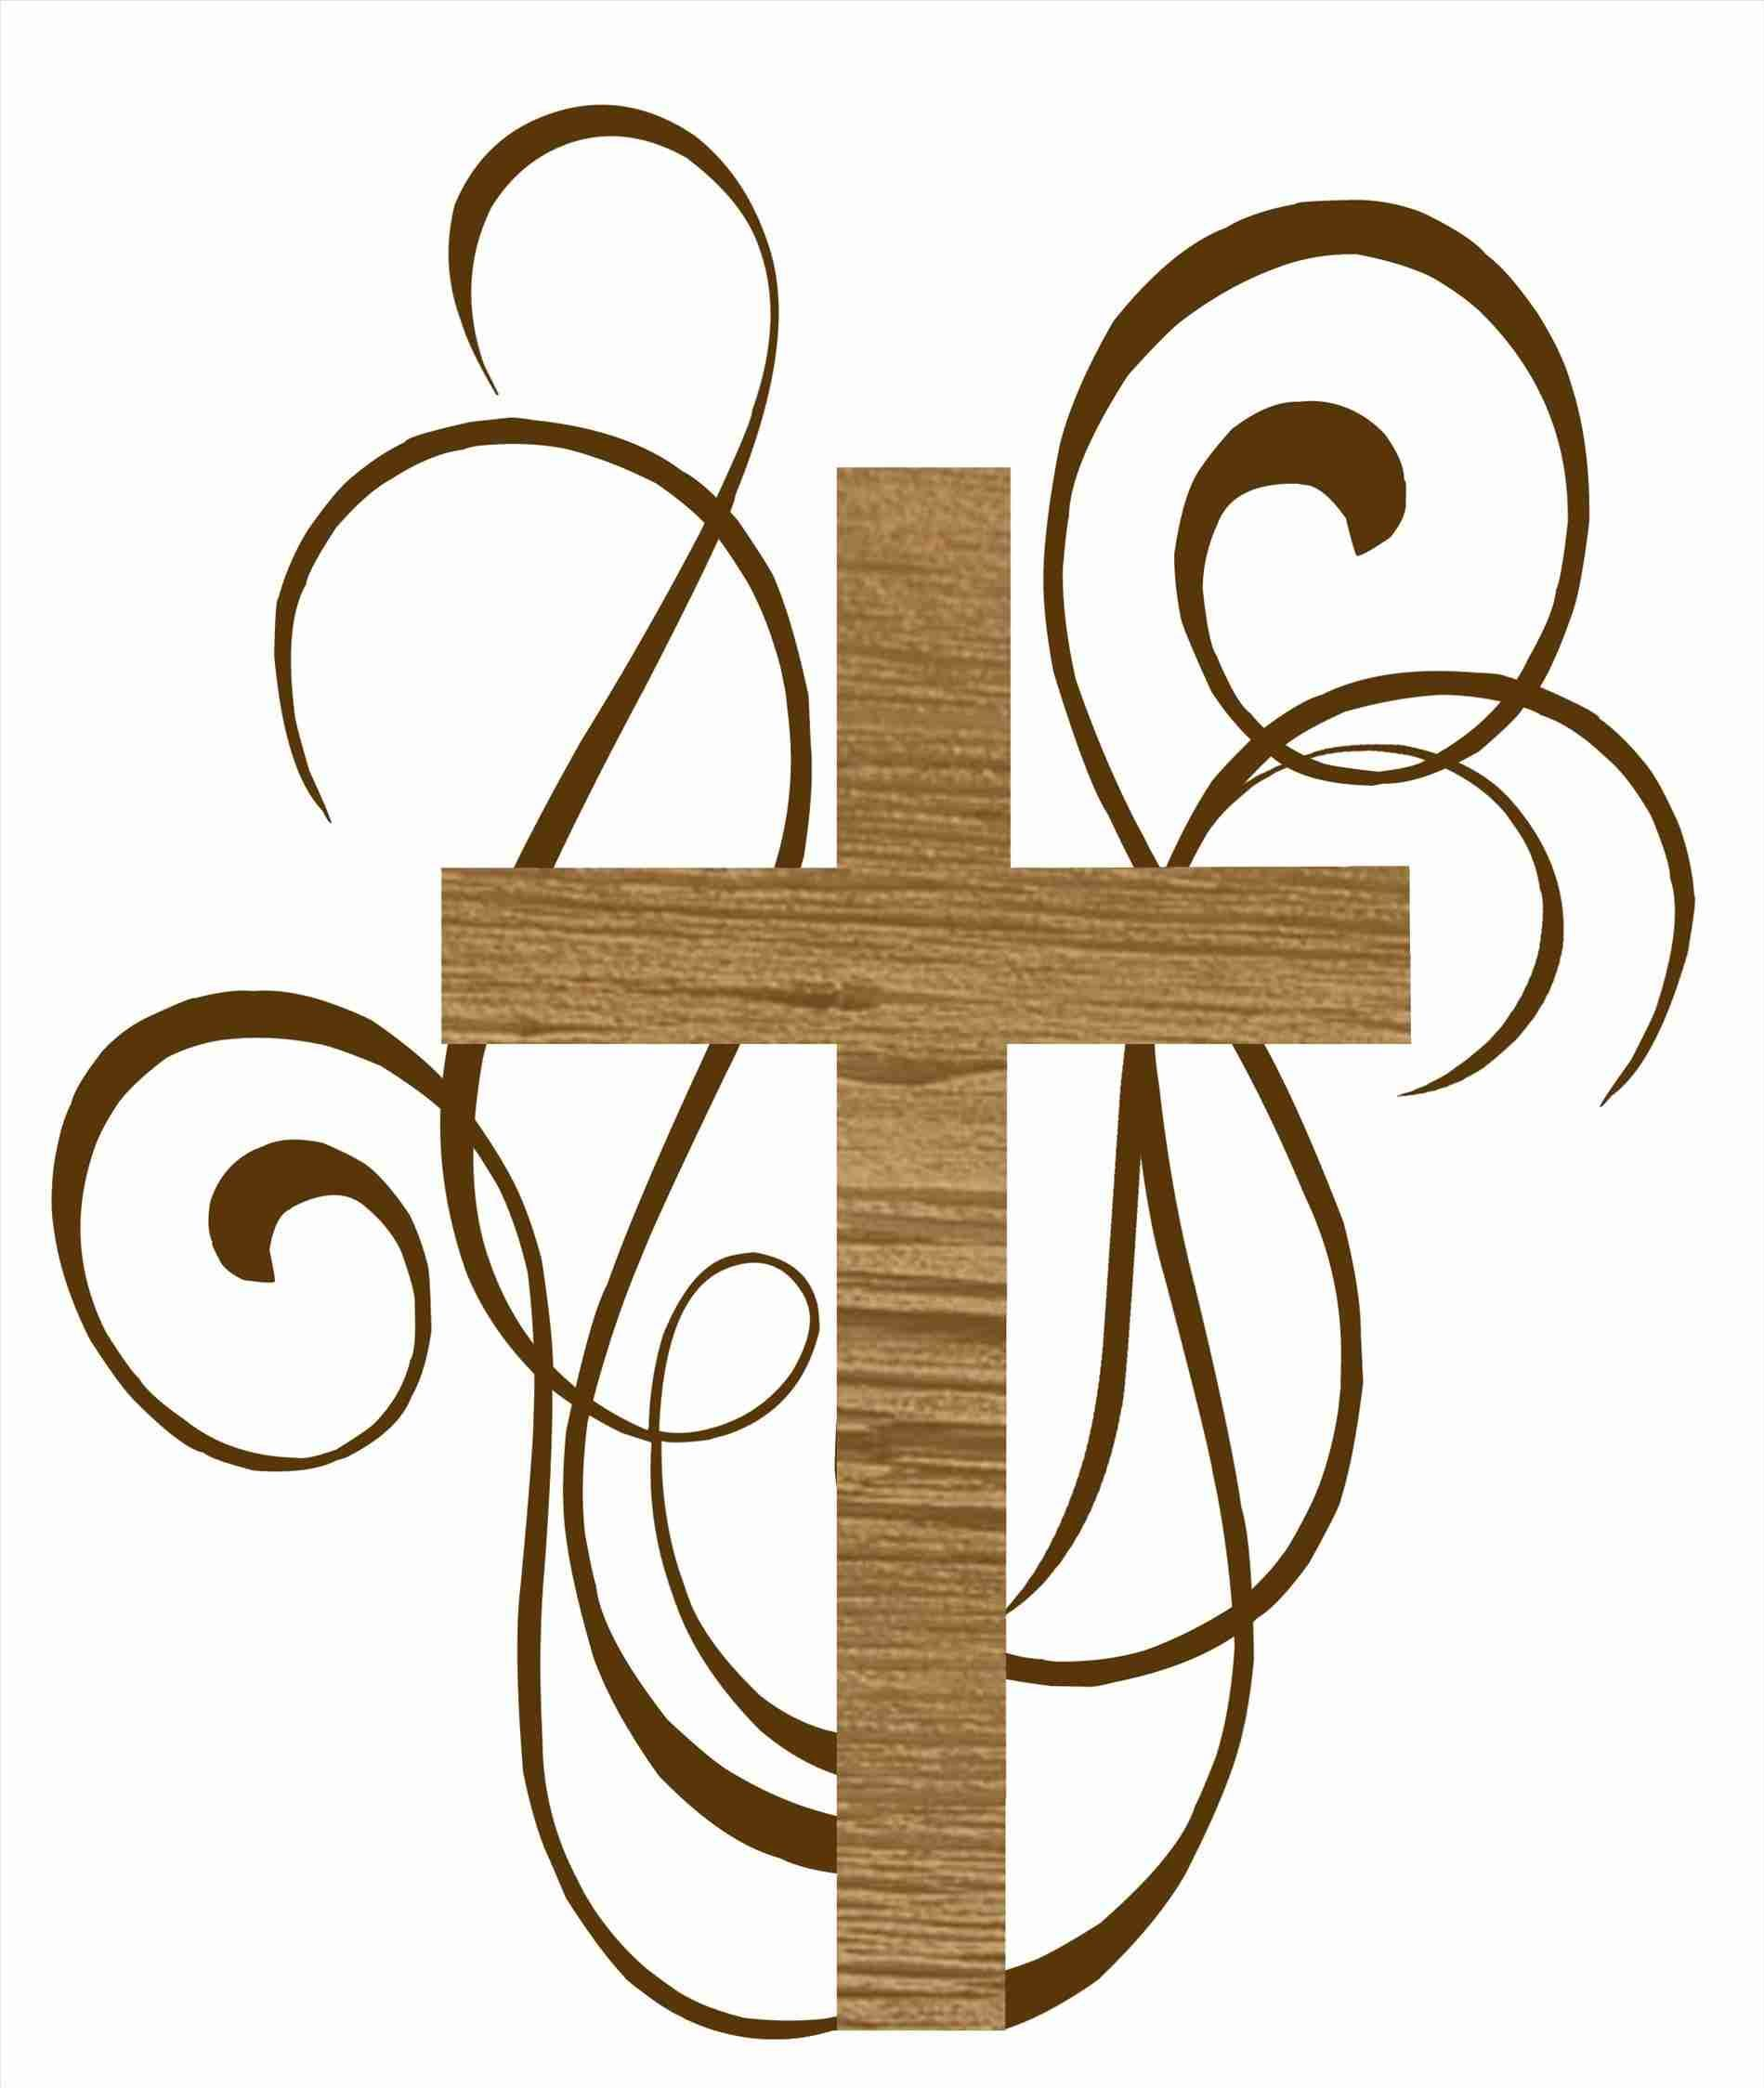 Baptism clipart swirl. Cross and wedding rings